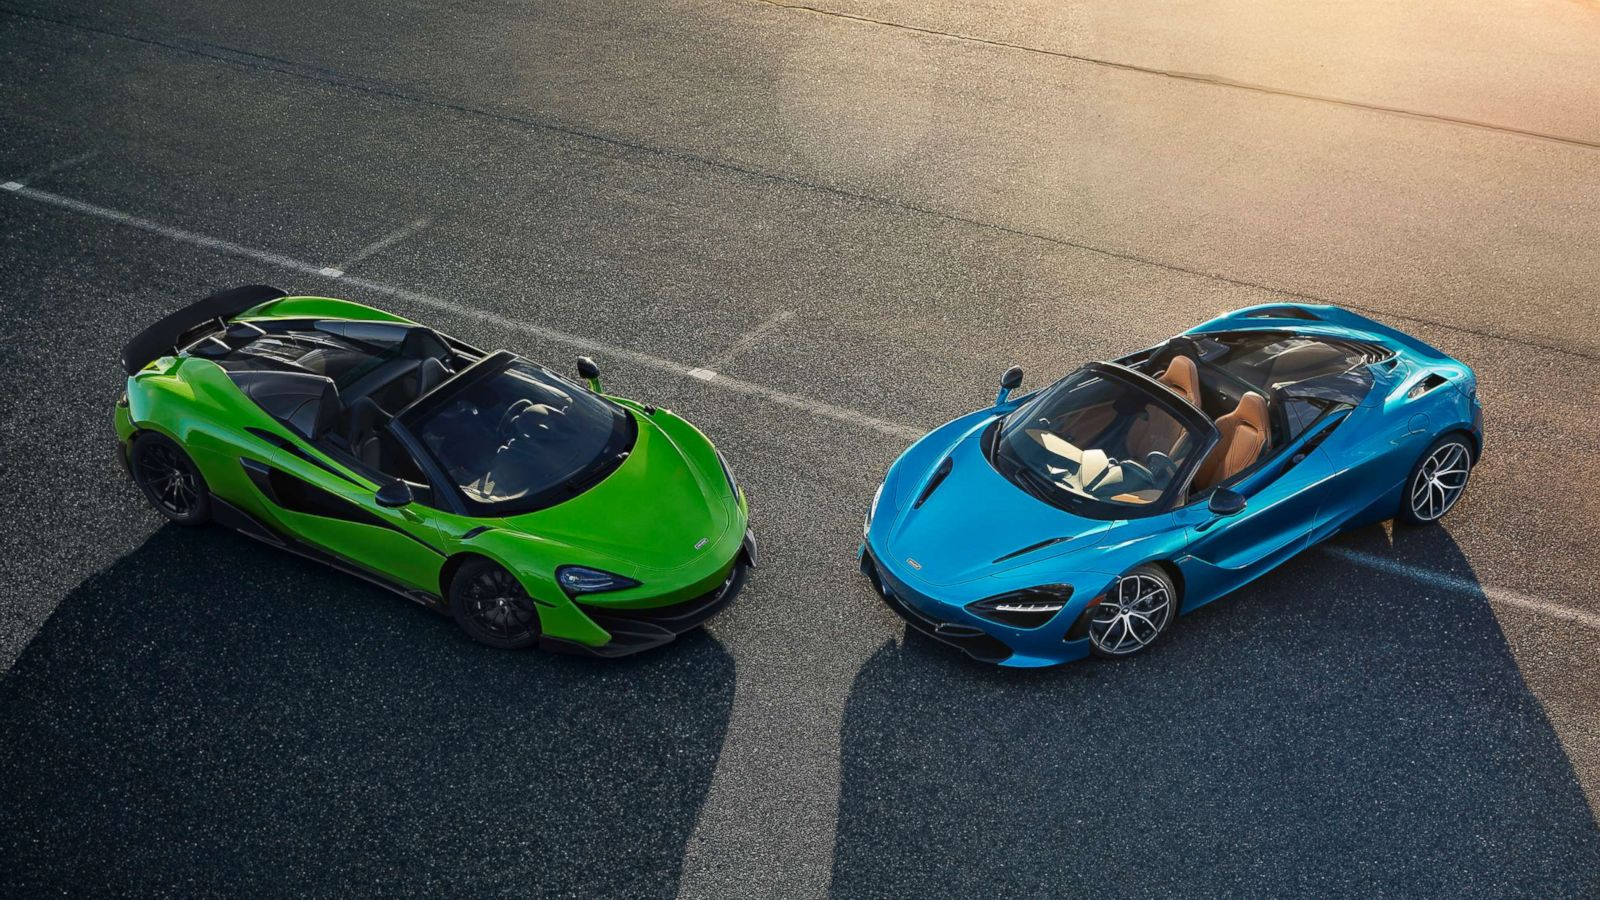 Mclaren Is Bringing The Fight To Ferrari And Lamborghini With 2 New Supercars Abc News